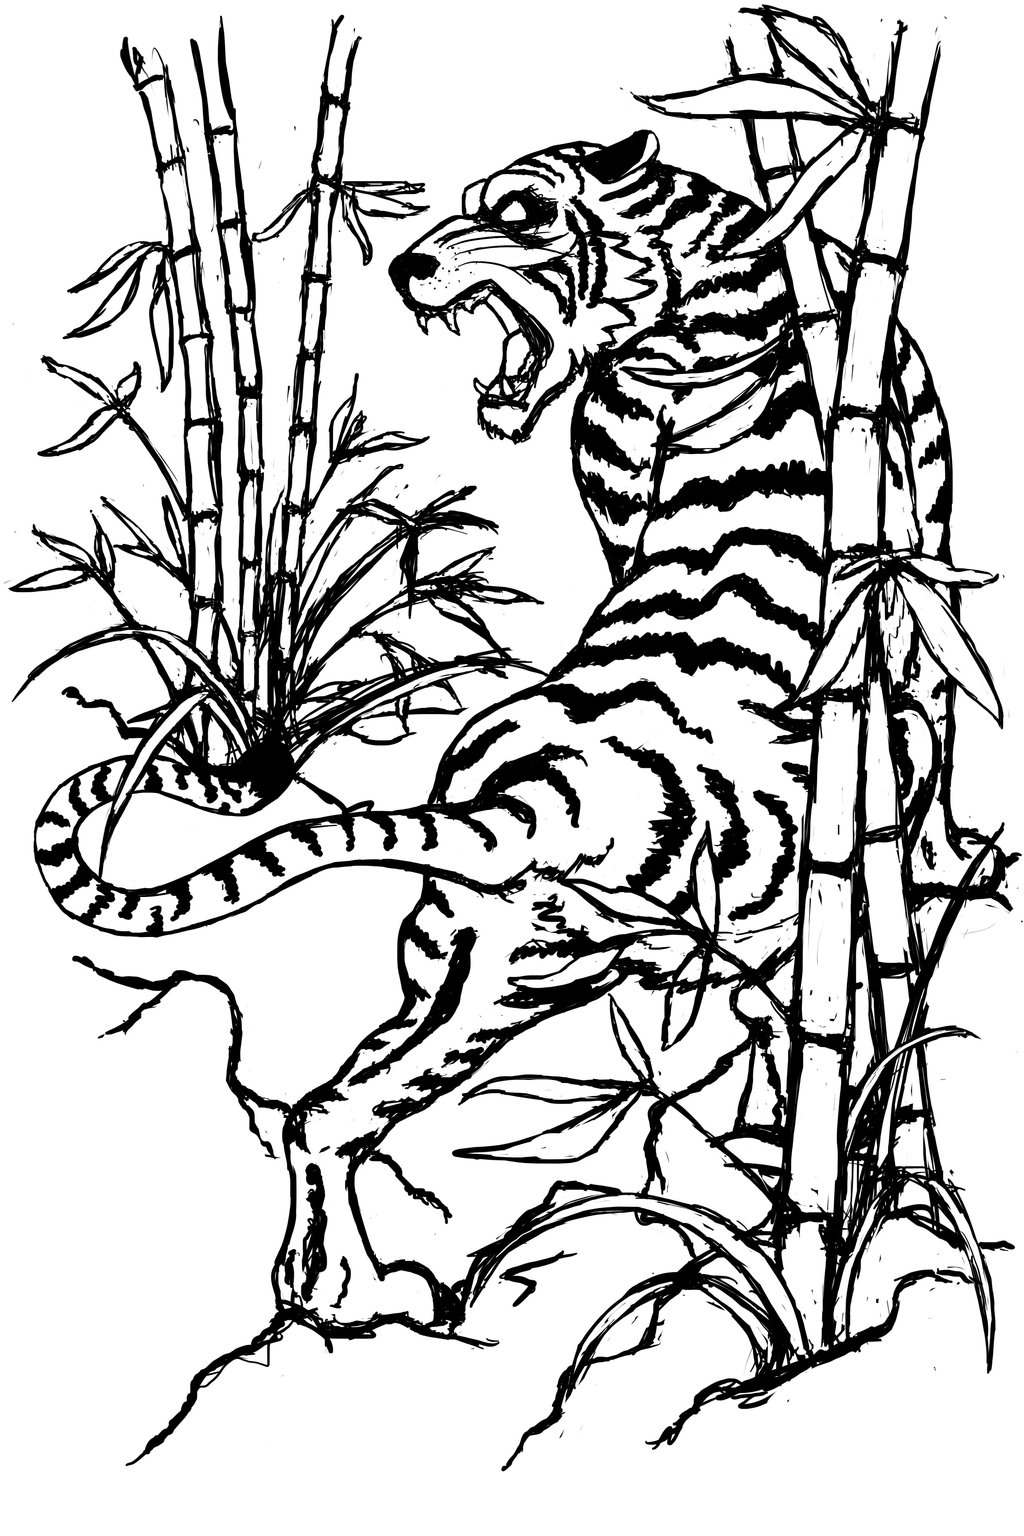 1024x1536 Black Tiger In Bamboo Trees Tattoo Stencil By Jdstone